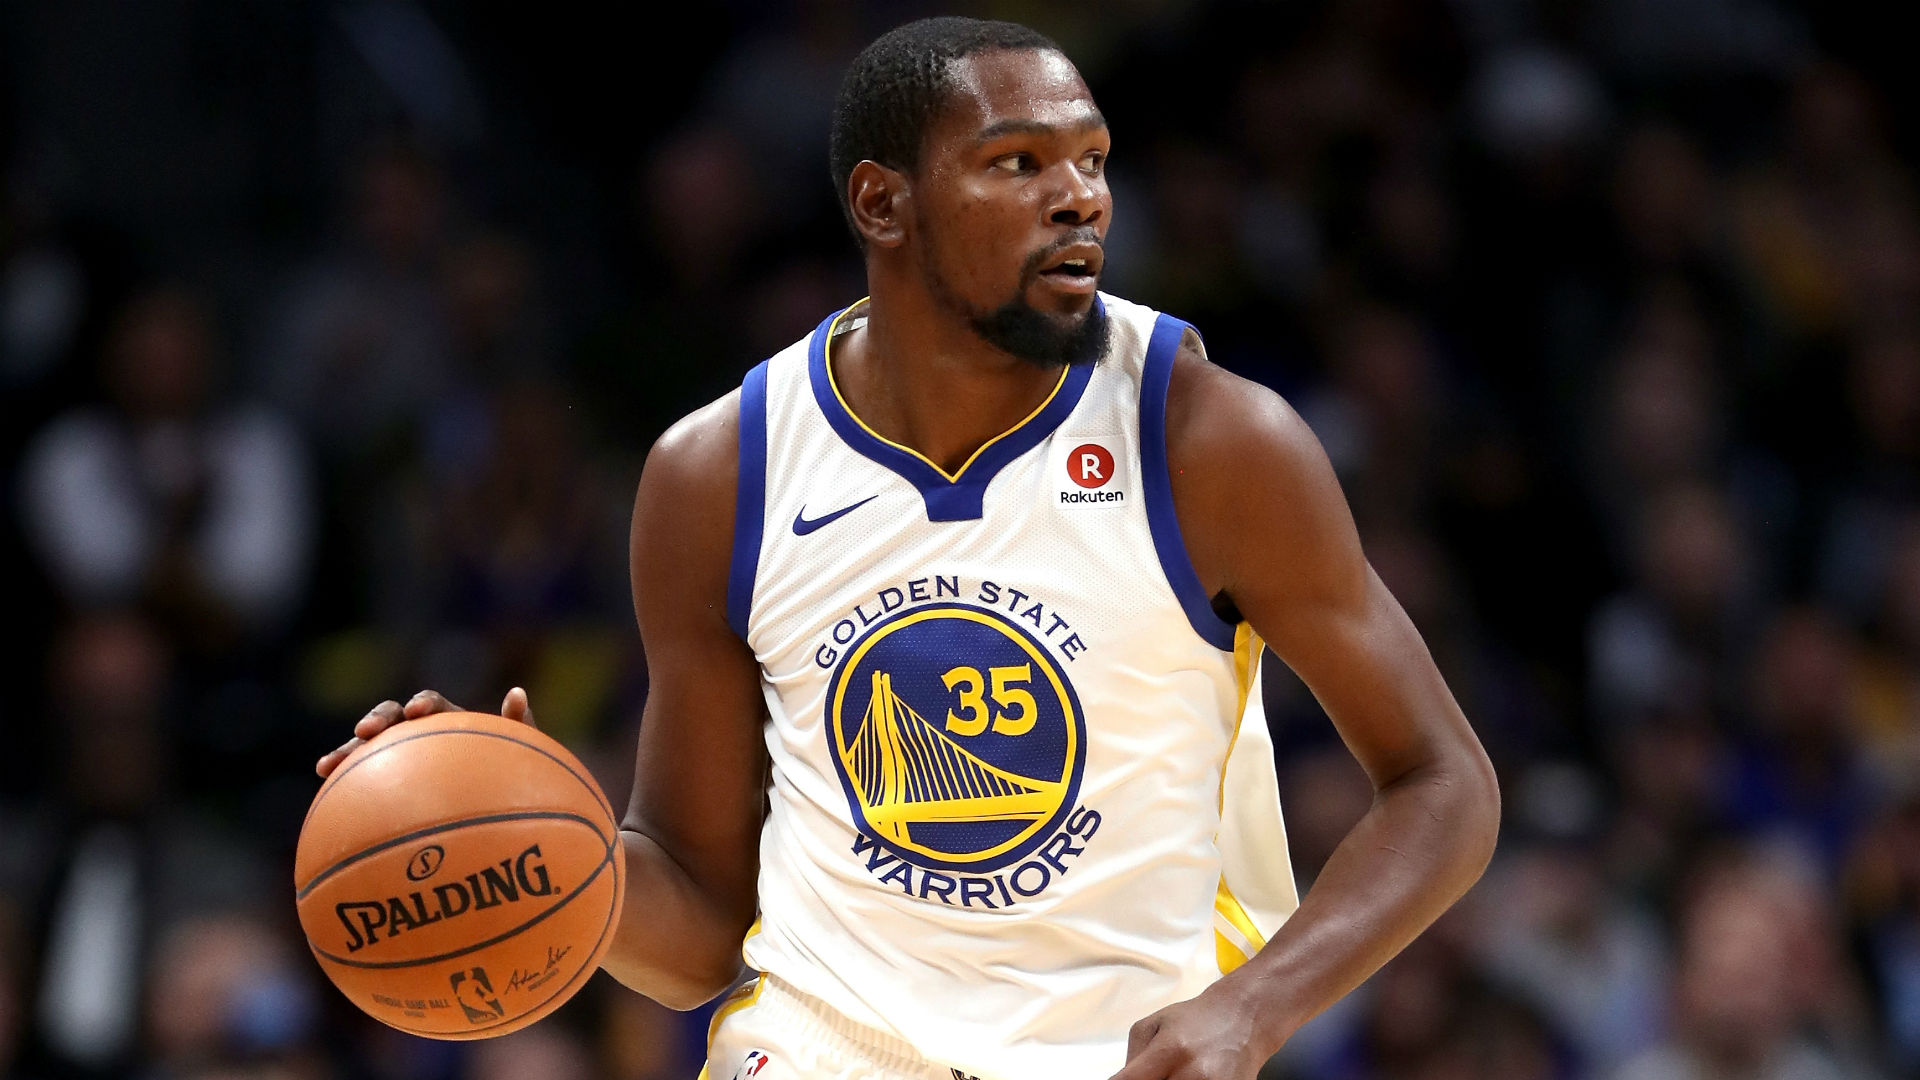 Kevin Durant is Warriors' best player, Kyrie Irving says